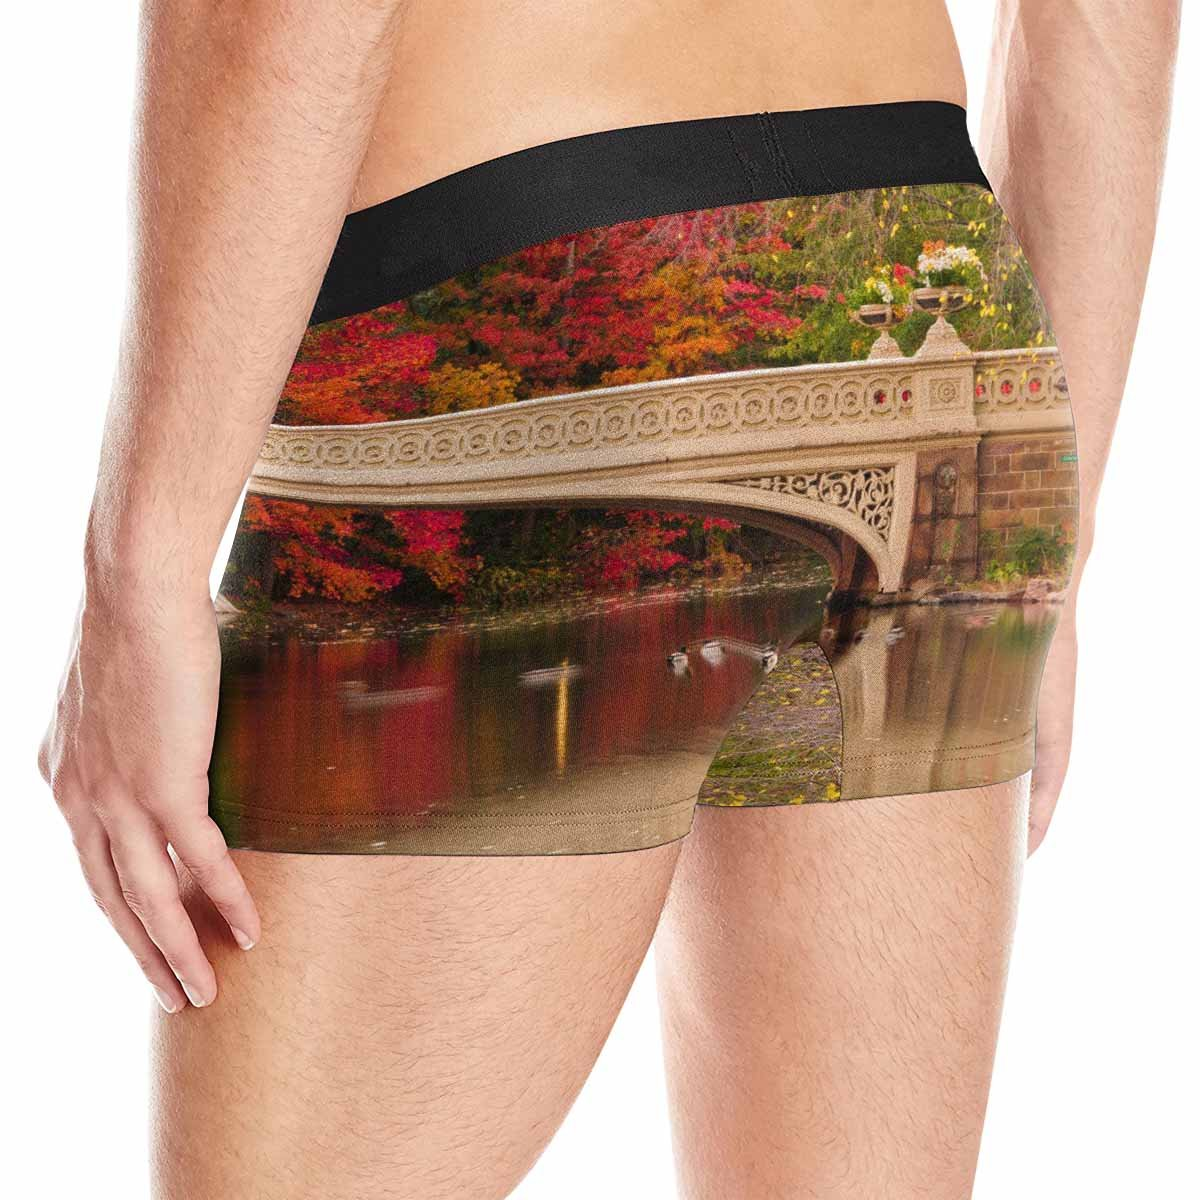 New York City XS-3XL INTERESTPRINT Custom Mens All-Over Print Boxer Briefs Fall Colors at Bow Bridge in Central Park